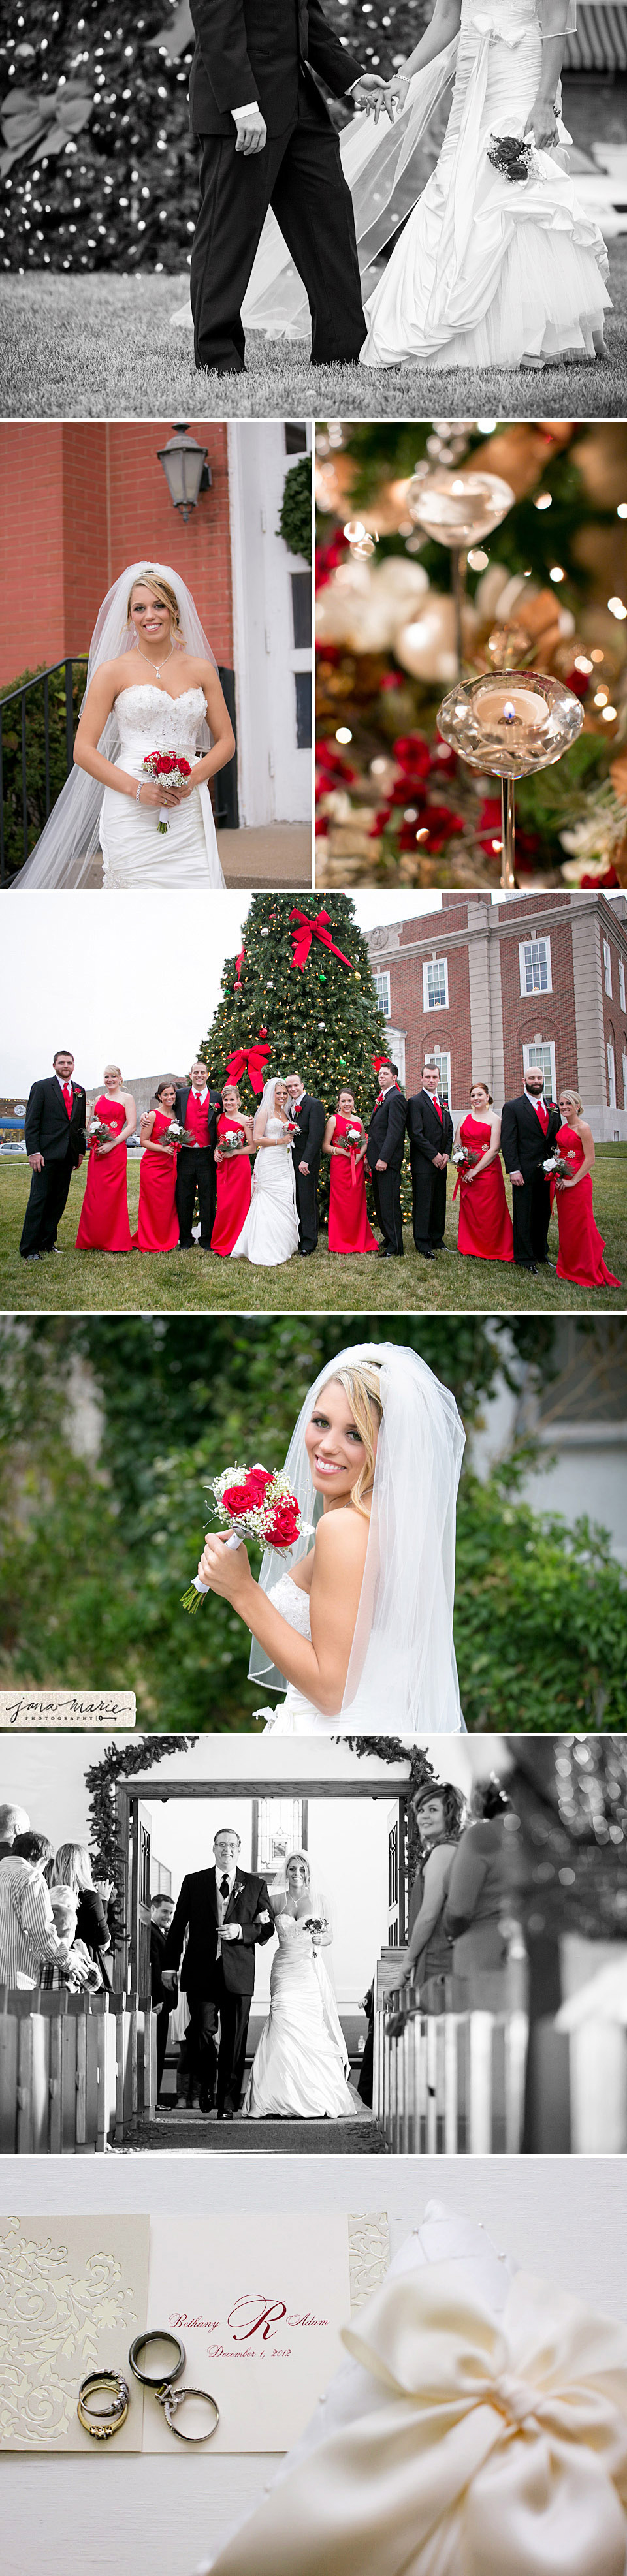 KC wedding photography, Jana Marler, Bethany Bray, Independence square, bride, couple pictures